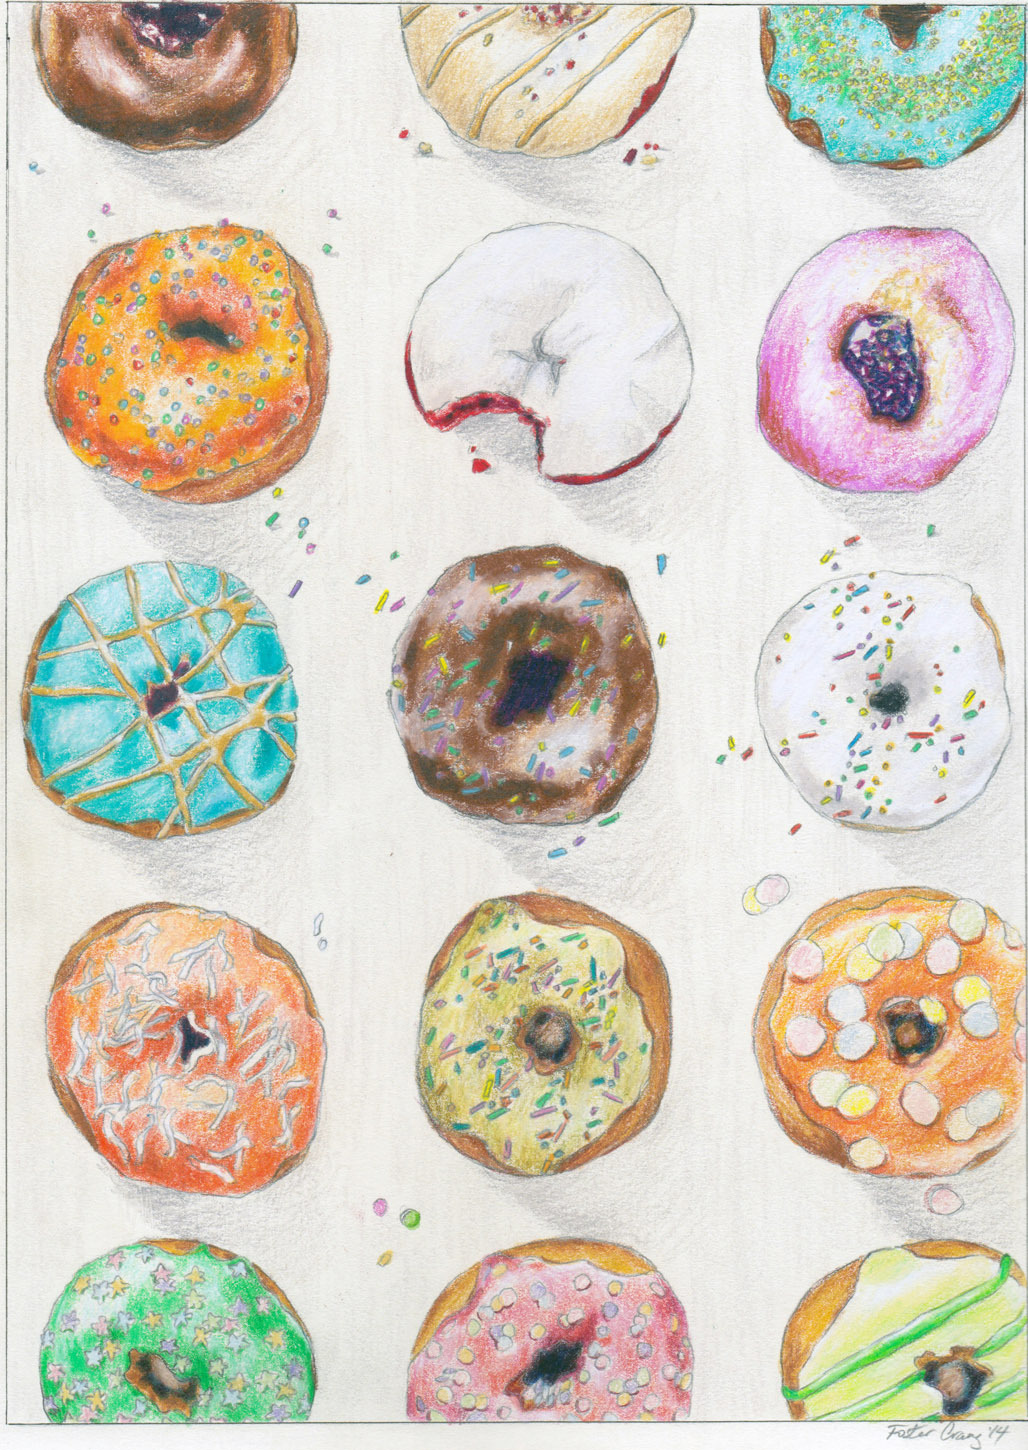 I Go Nuts for Donuts